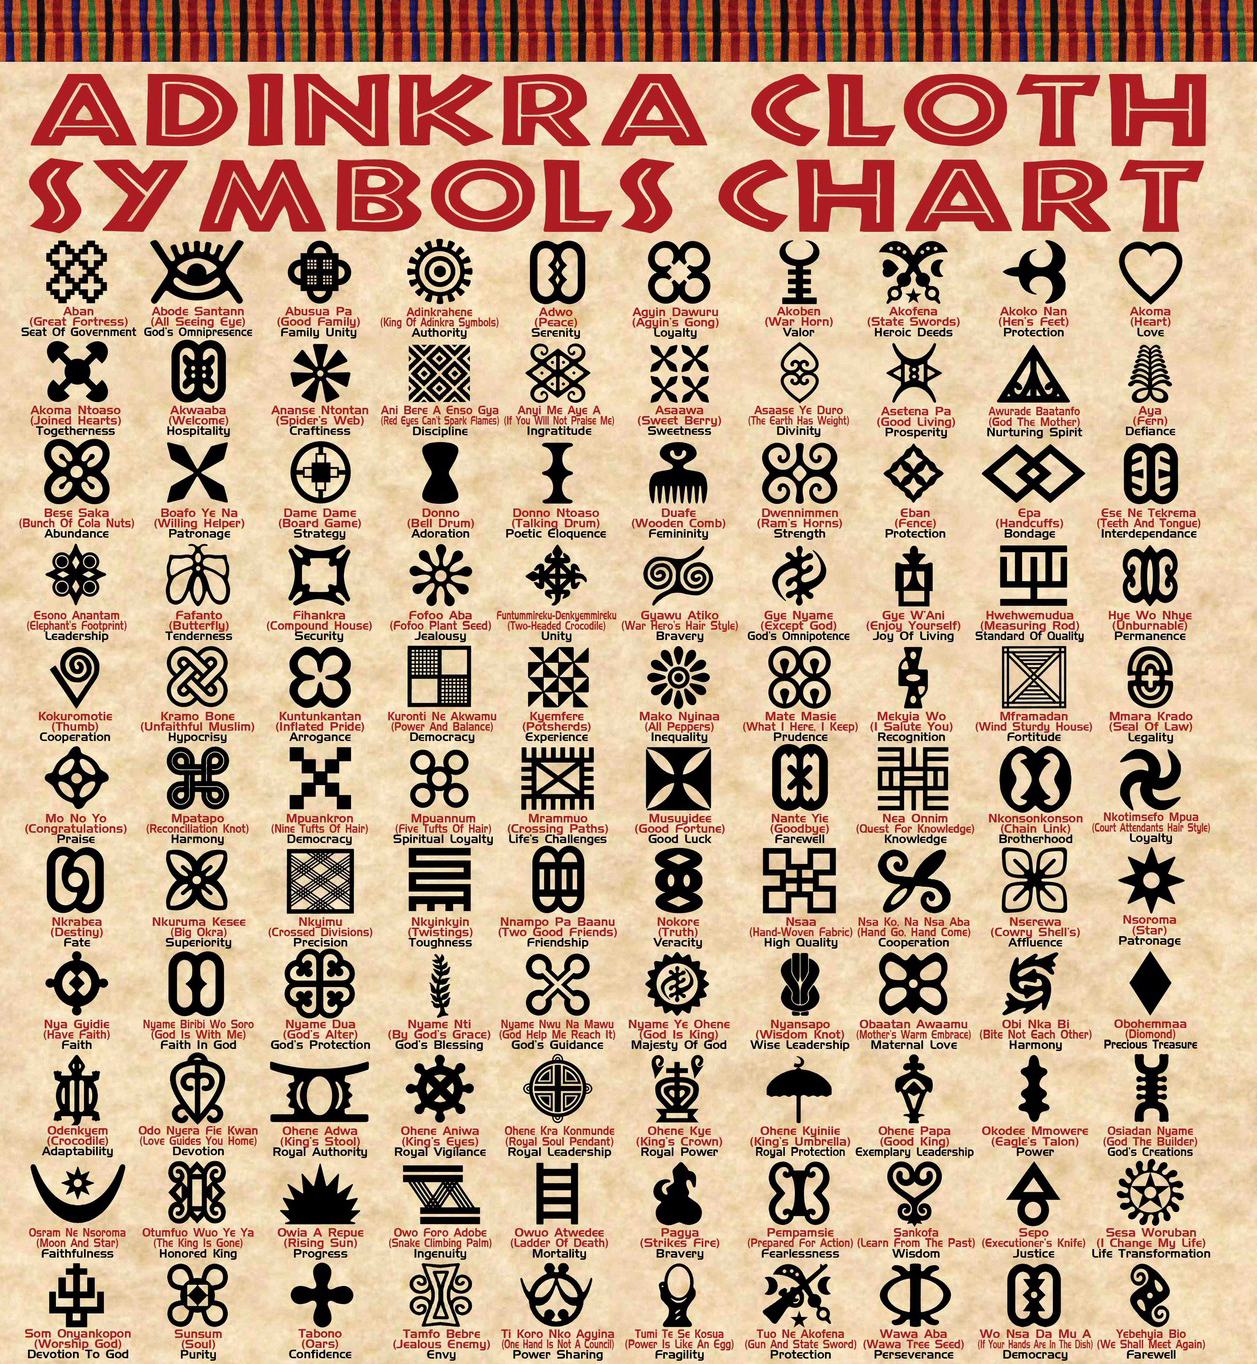 Adinkra Symbol: Mate Masie Translation: I consider and keep what I learn Proverbial meaning.